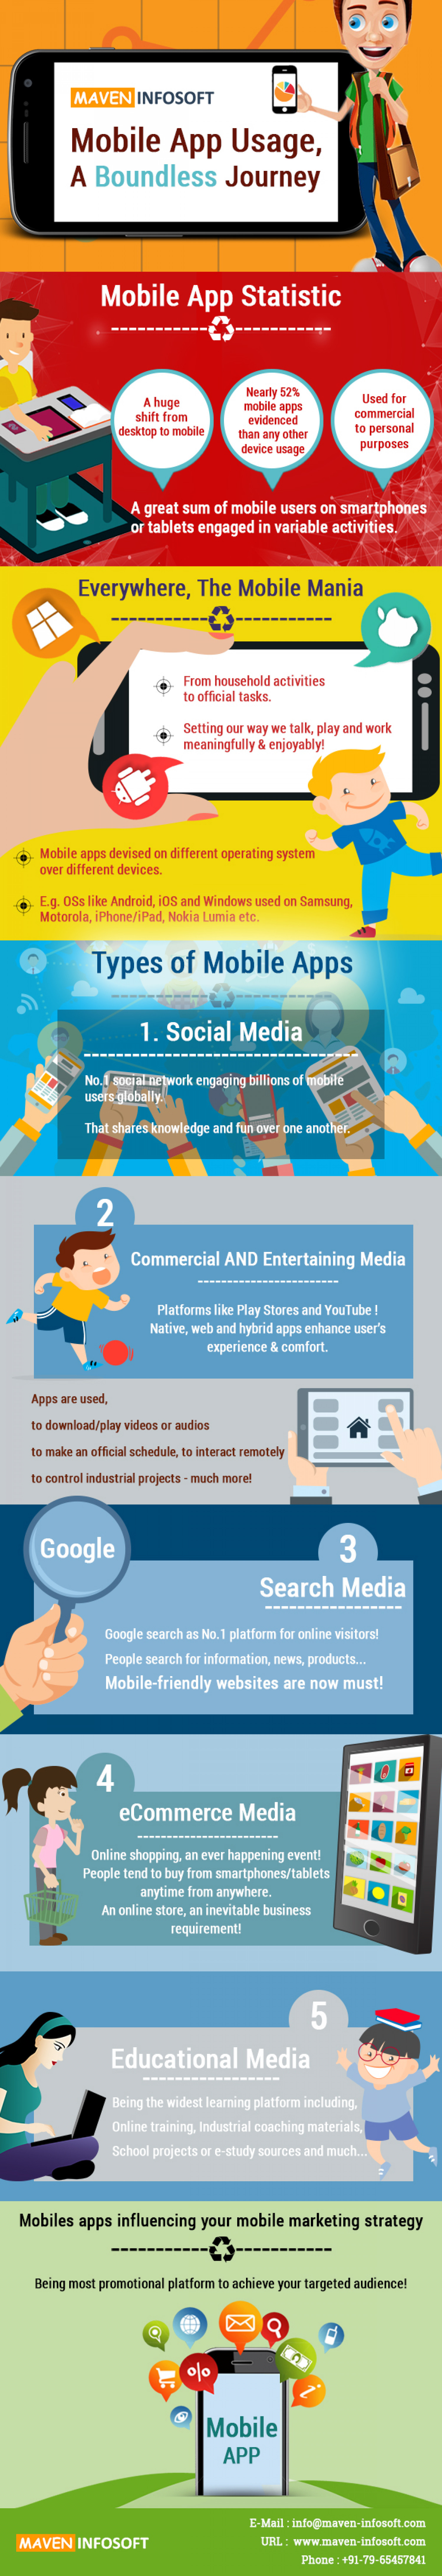 Mobile App Usage, A Boundless Journey Infographic